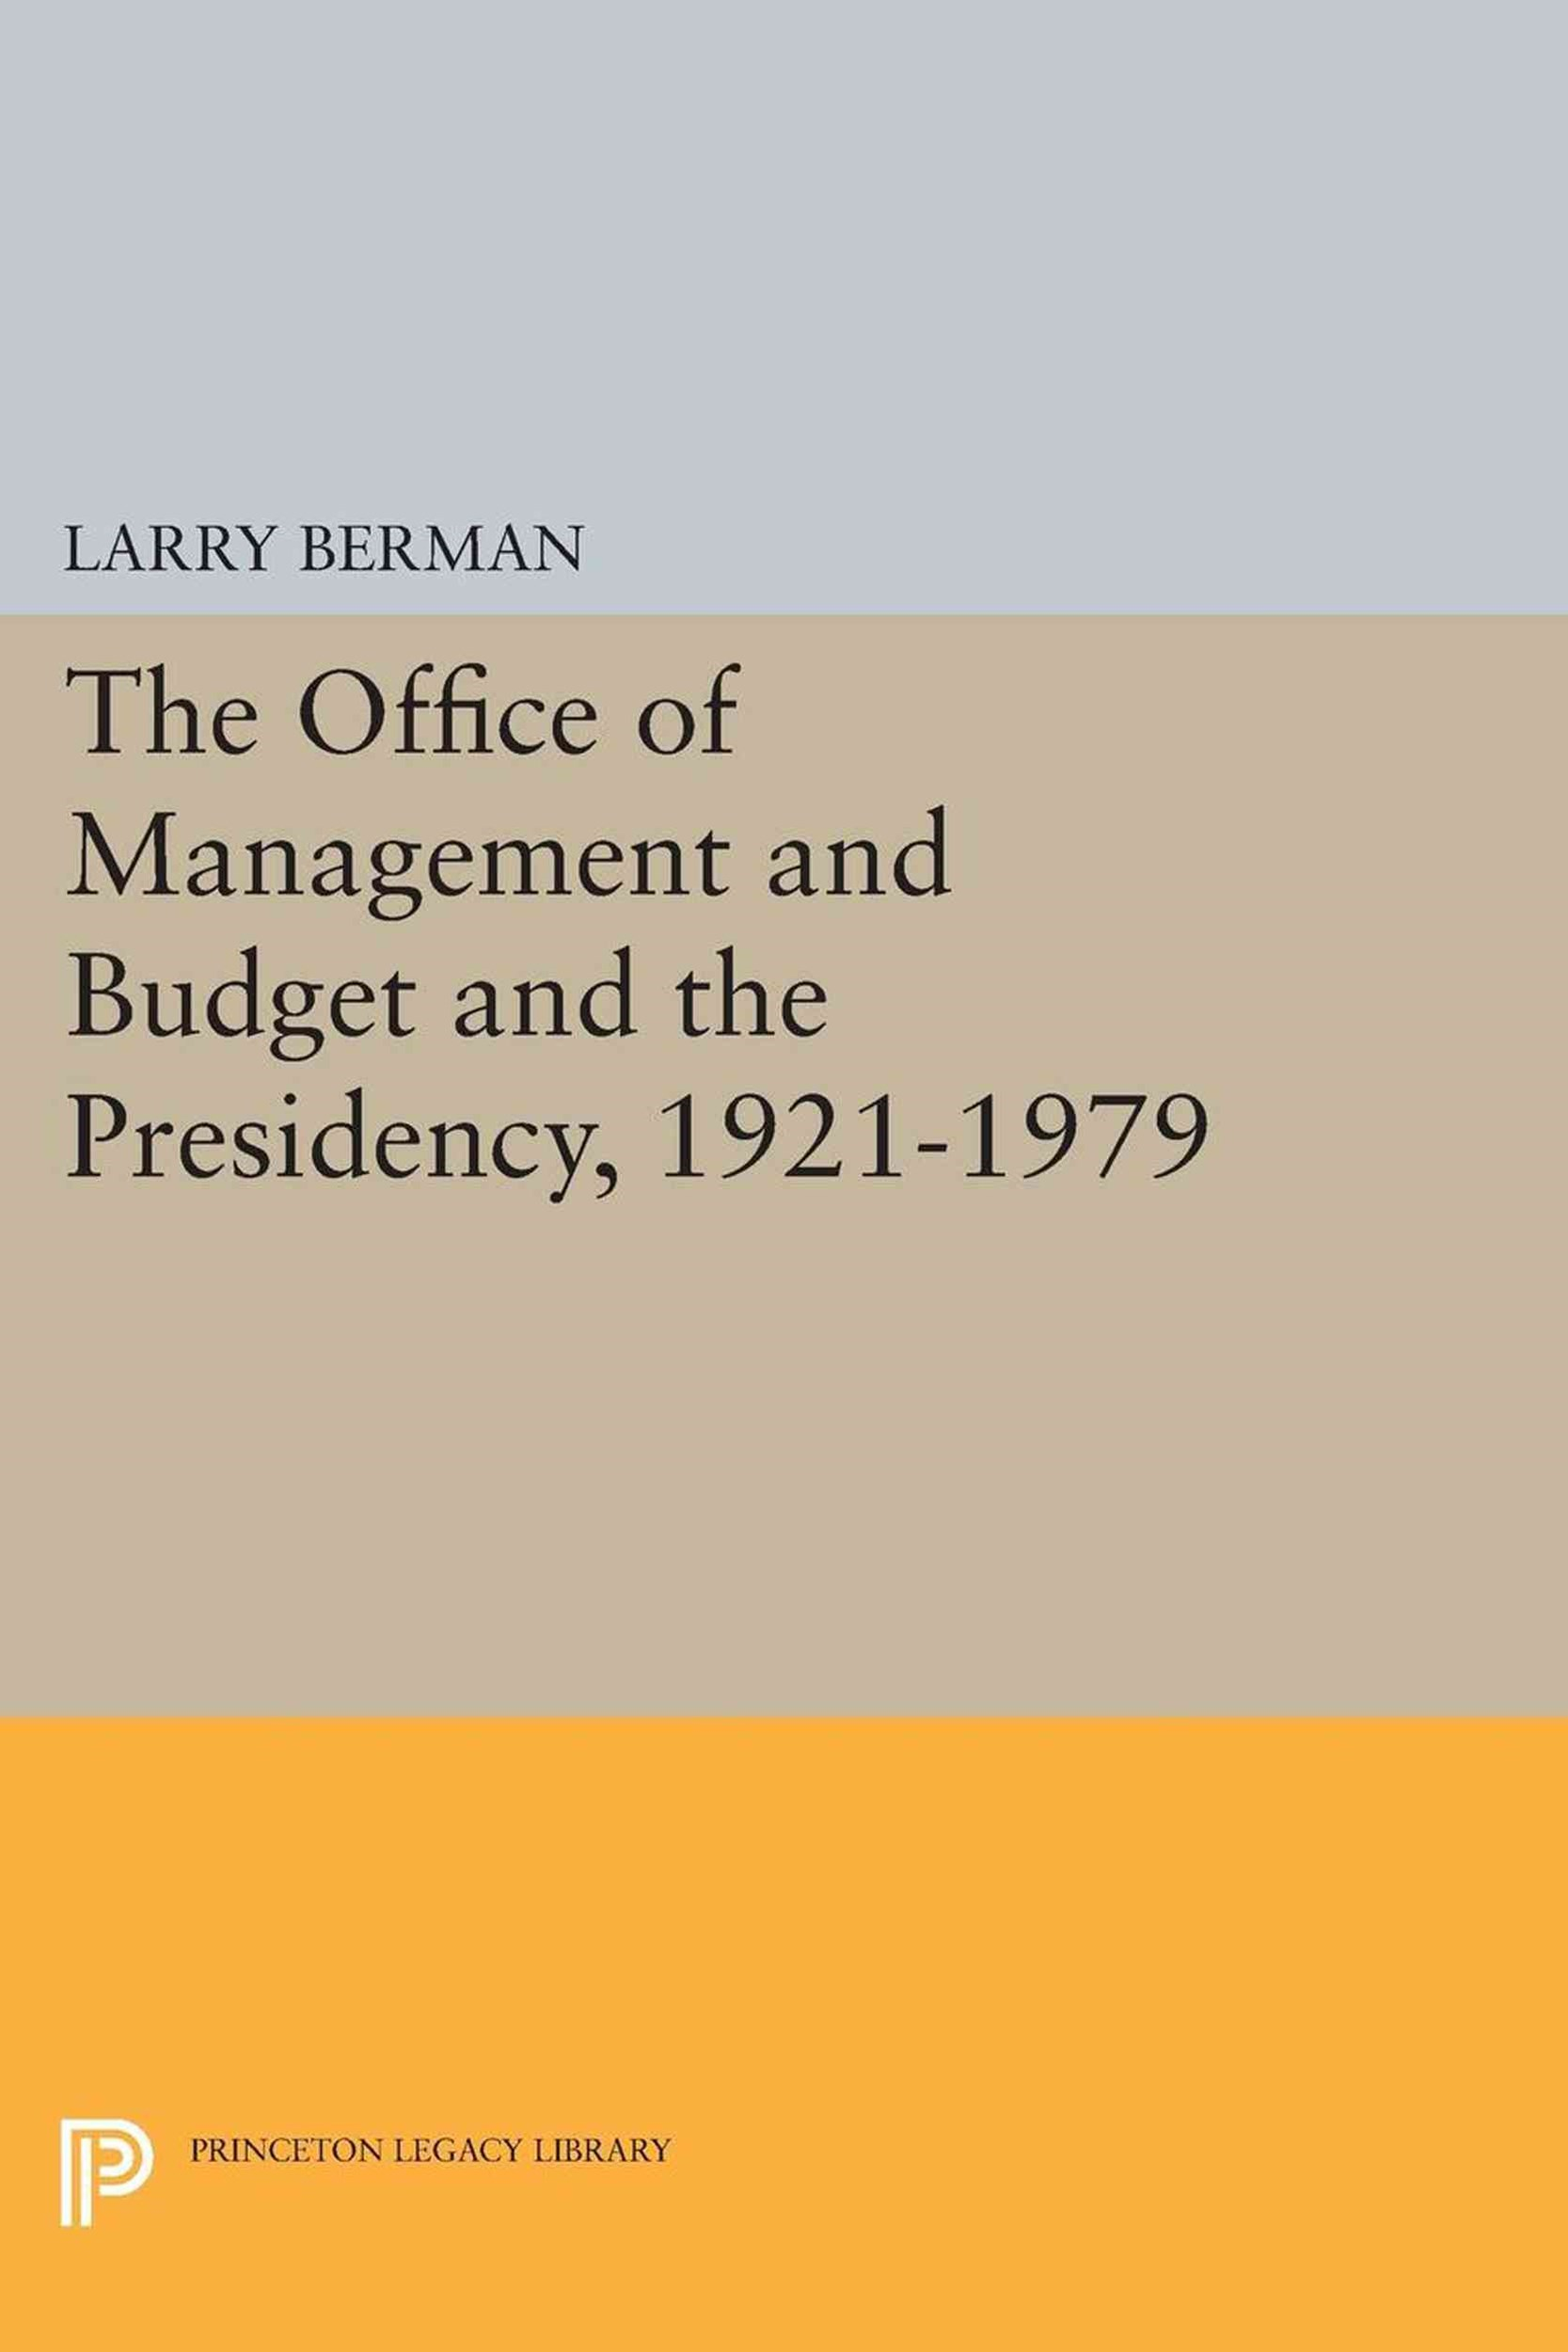 The Office of Management and Budget and the Presidency, 1921-1979